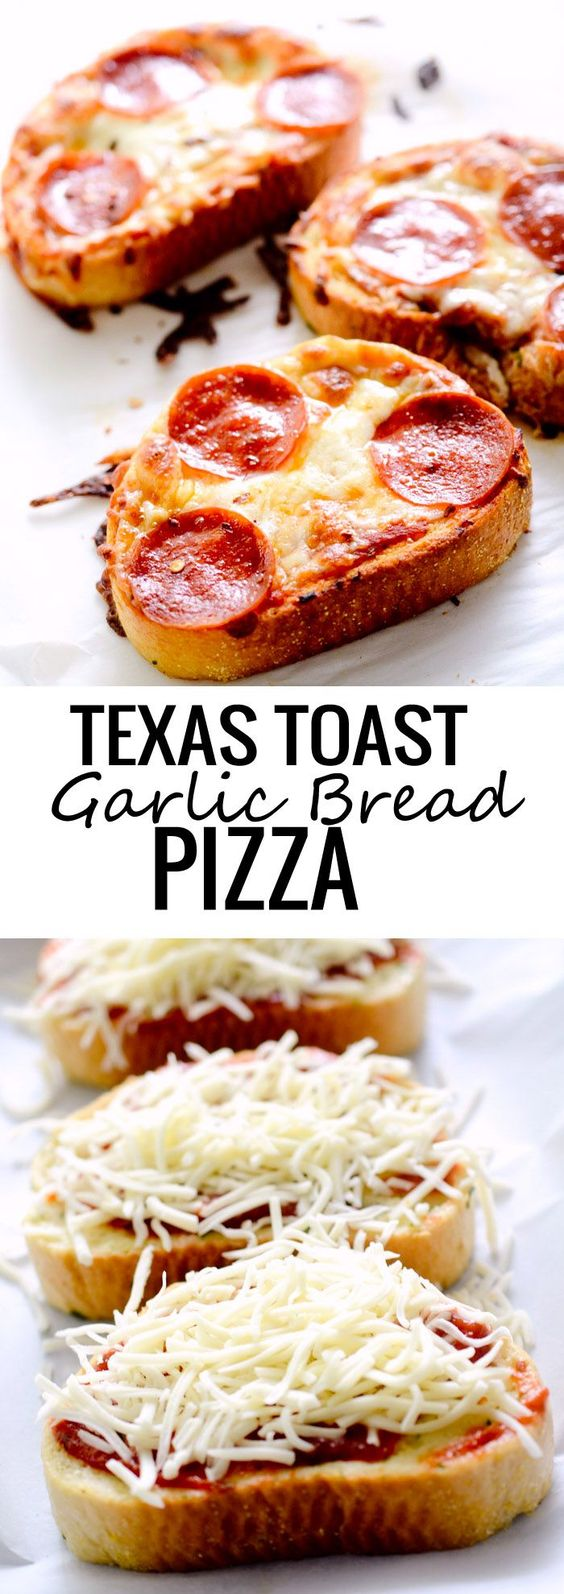 ★★★★☆ 3019 ratings      | TEXAS TOAST GARLIC BREAD PIZZA #TEXAS #TOAST #GARLIC #BREAD #PIZZA